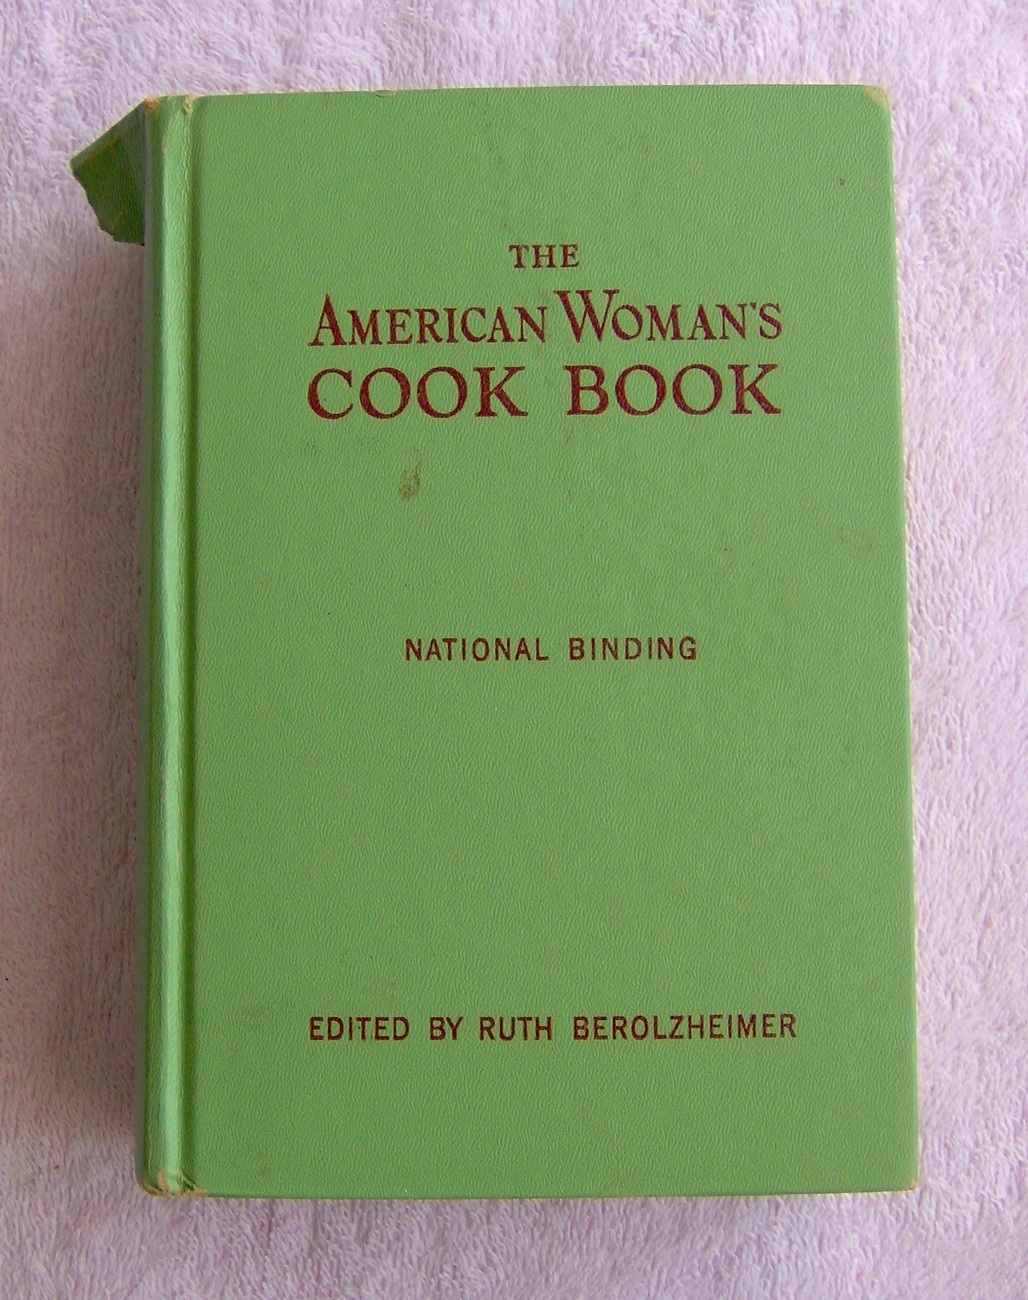 Cook Brothers Furniture American Woman's Cook Book Vintage Hardcover 1960 - Cookbooks